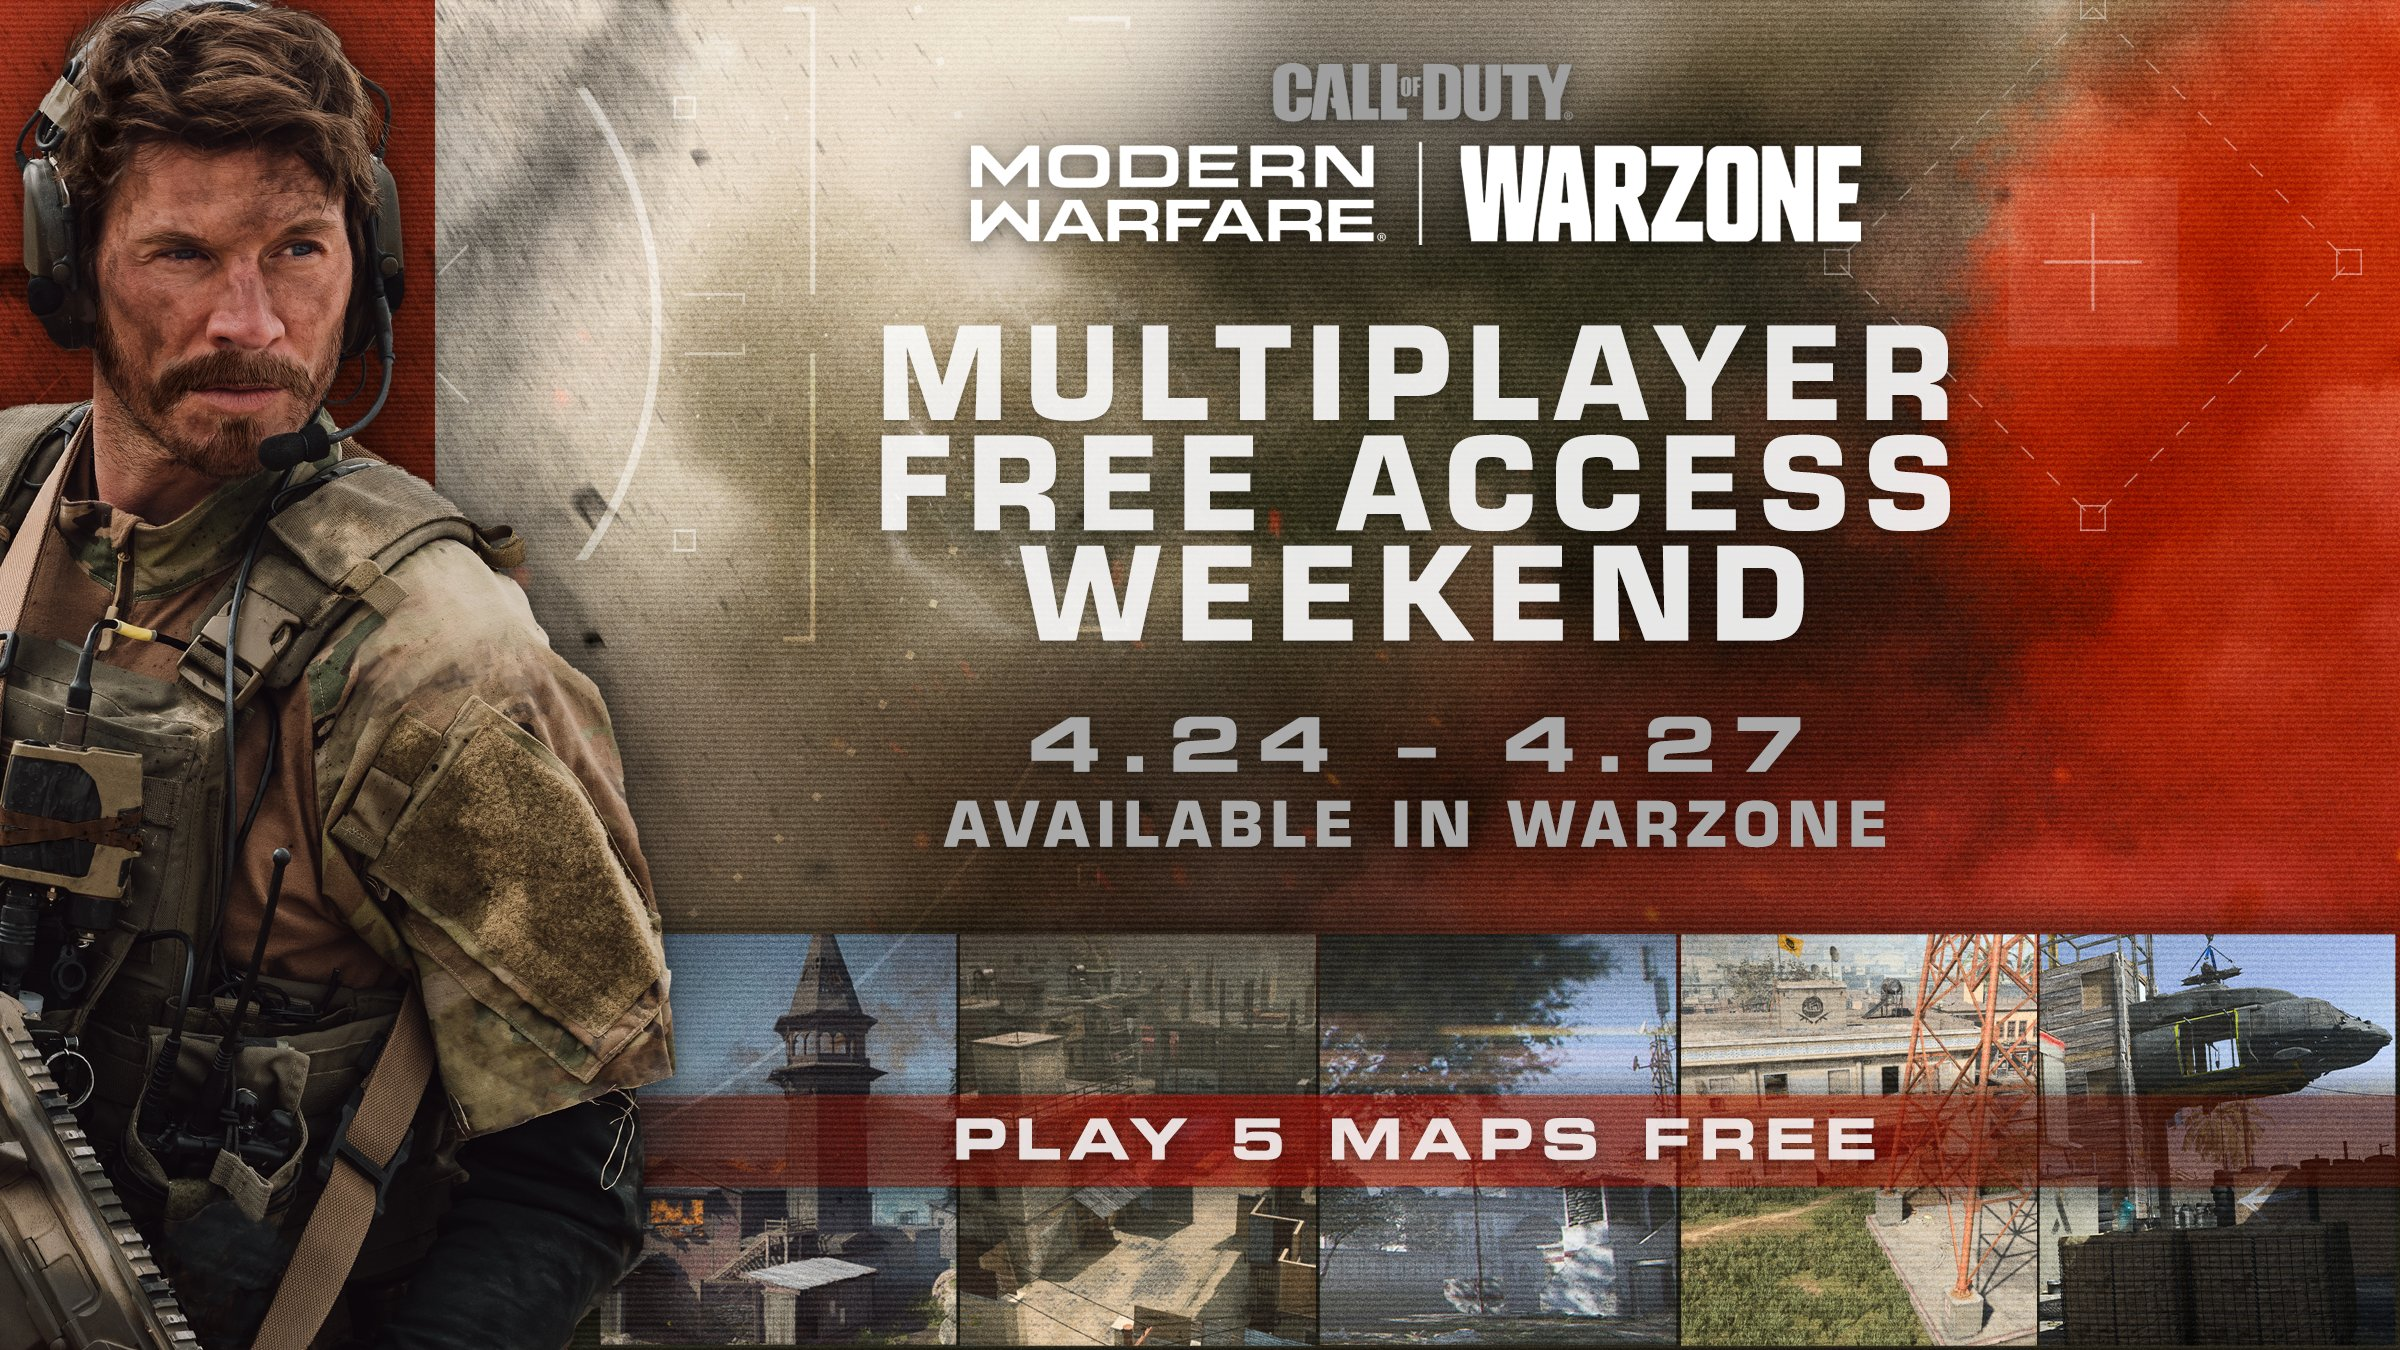 Call Of Duty Modern Warfare Free Multiplayer This Weekend When